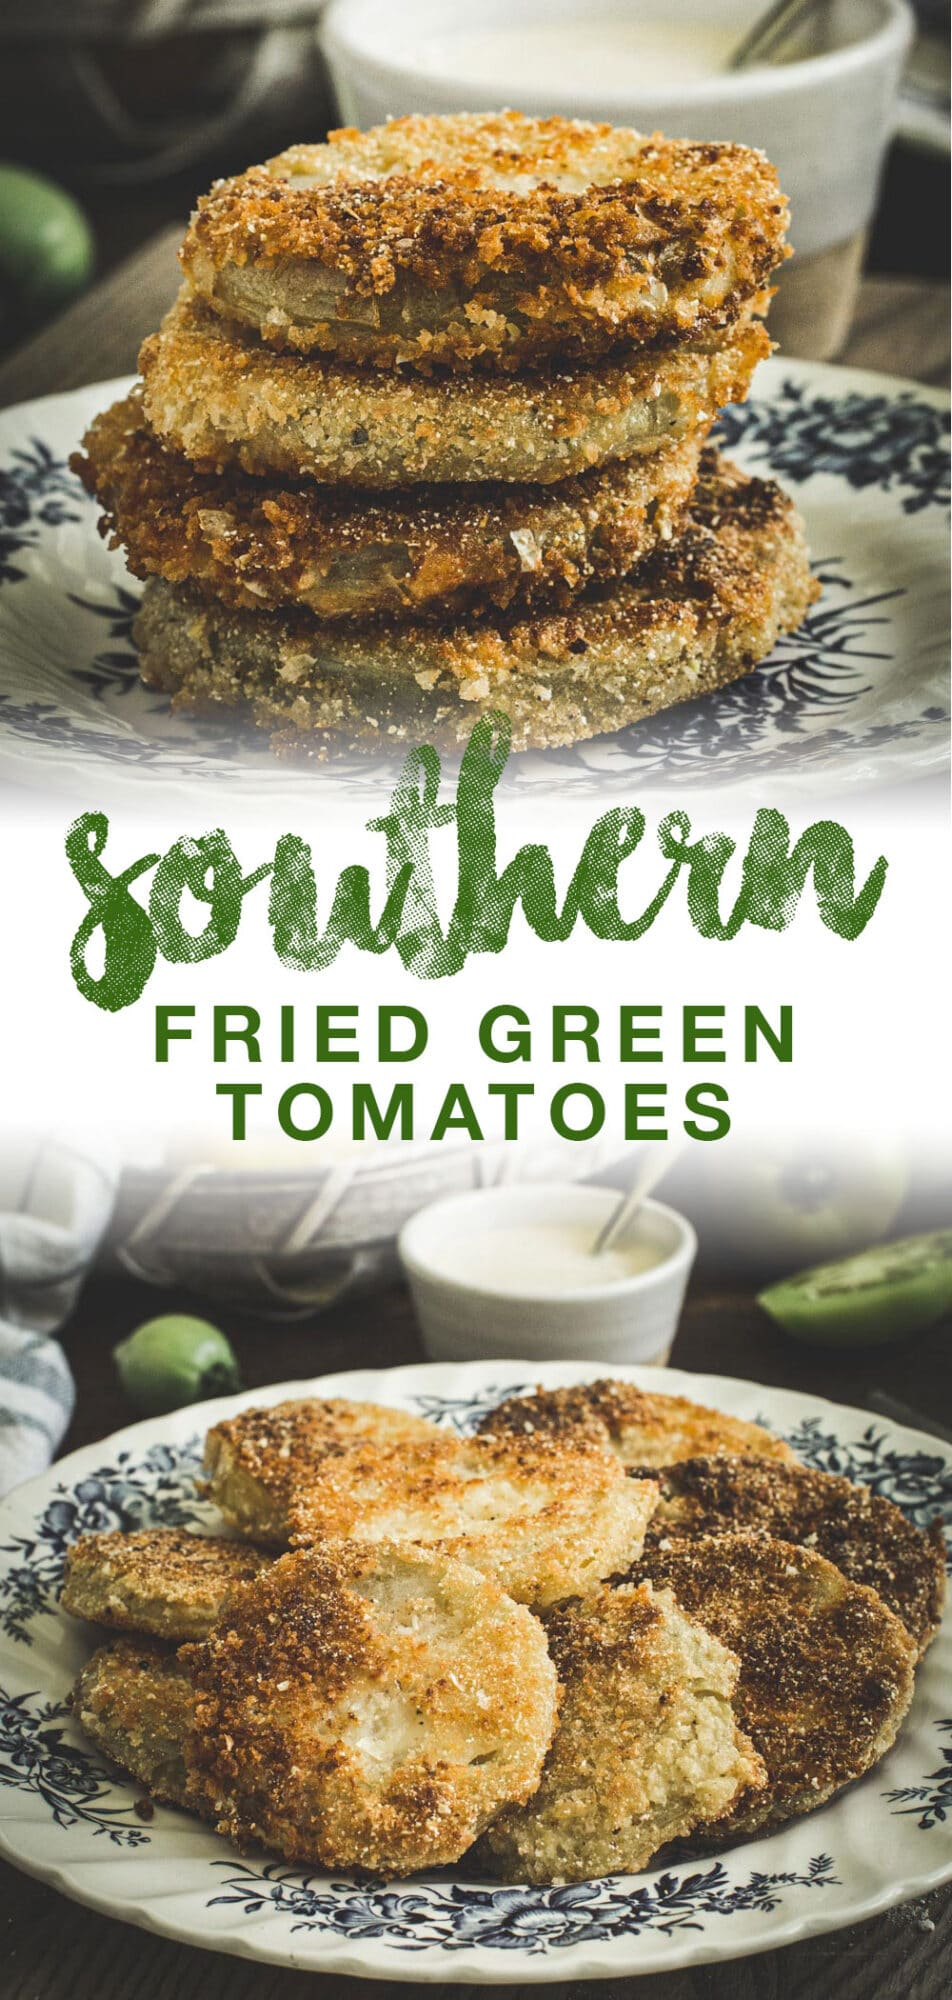 Fried green tomatoes double image with green title.